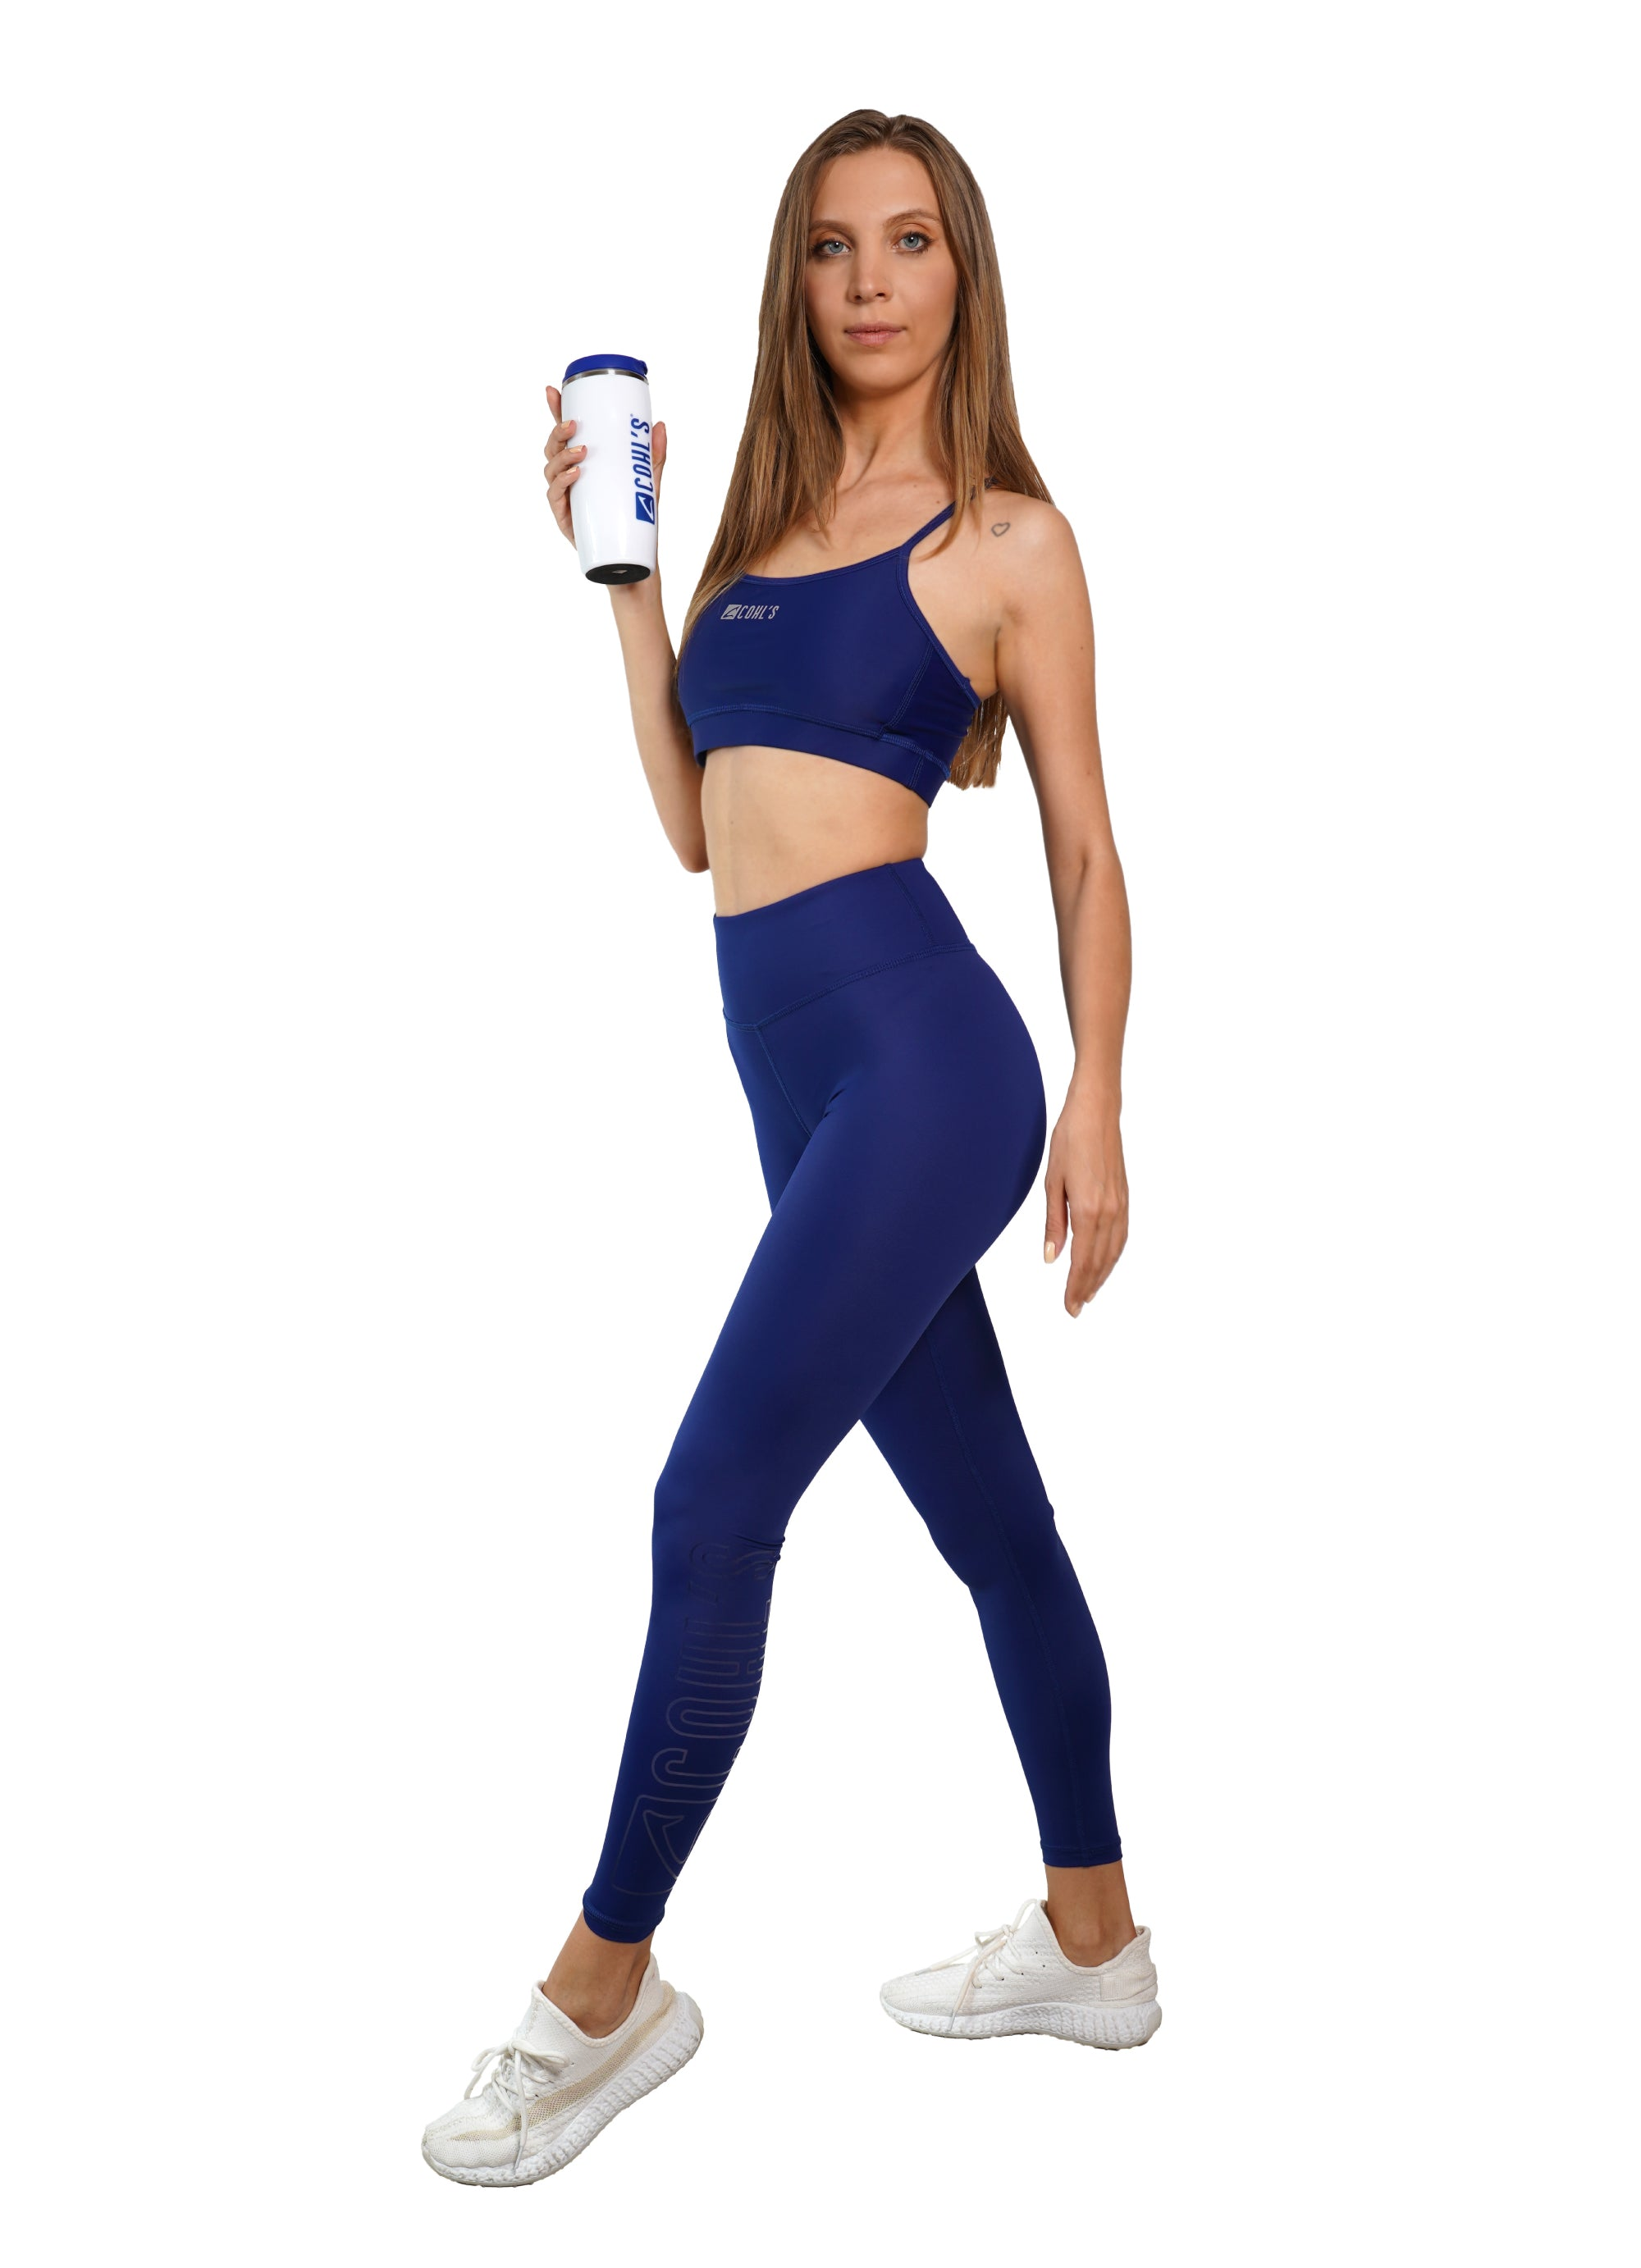 Basic VP Blue Leggings  / Outline Glass - C122010